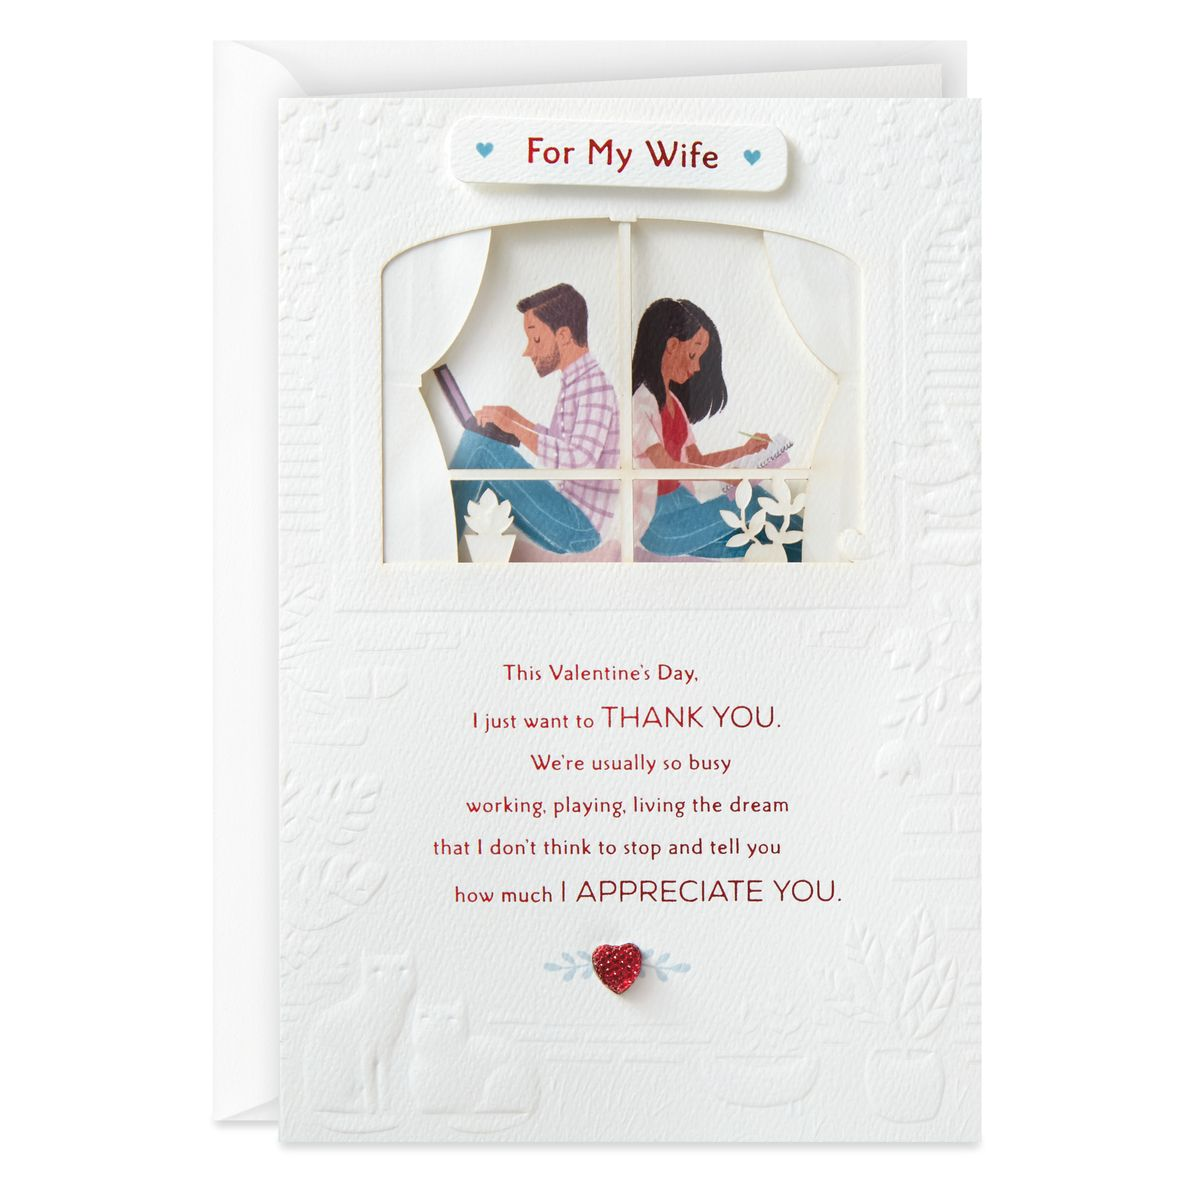 "A card with a man and woman sitting back to back in a house, reading ""For my wife: This Valentine's Day, I just want to THANK YOU. We're usually so busy working, playing, living the dream that I don't think to stop and tell you how much I APPRECIATE YOU."""